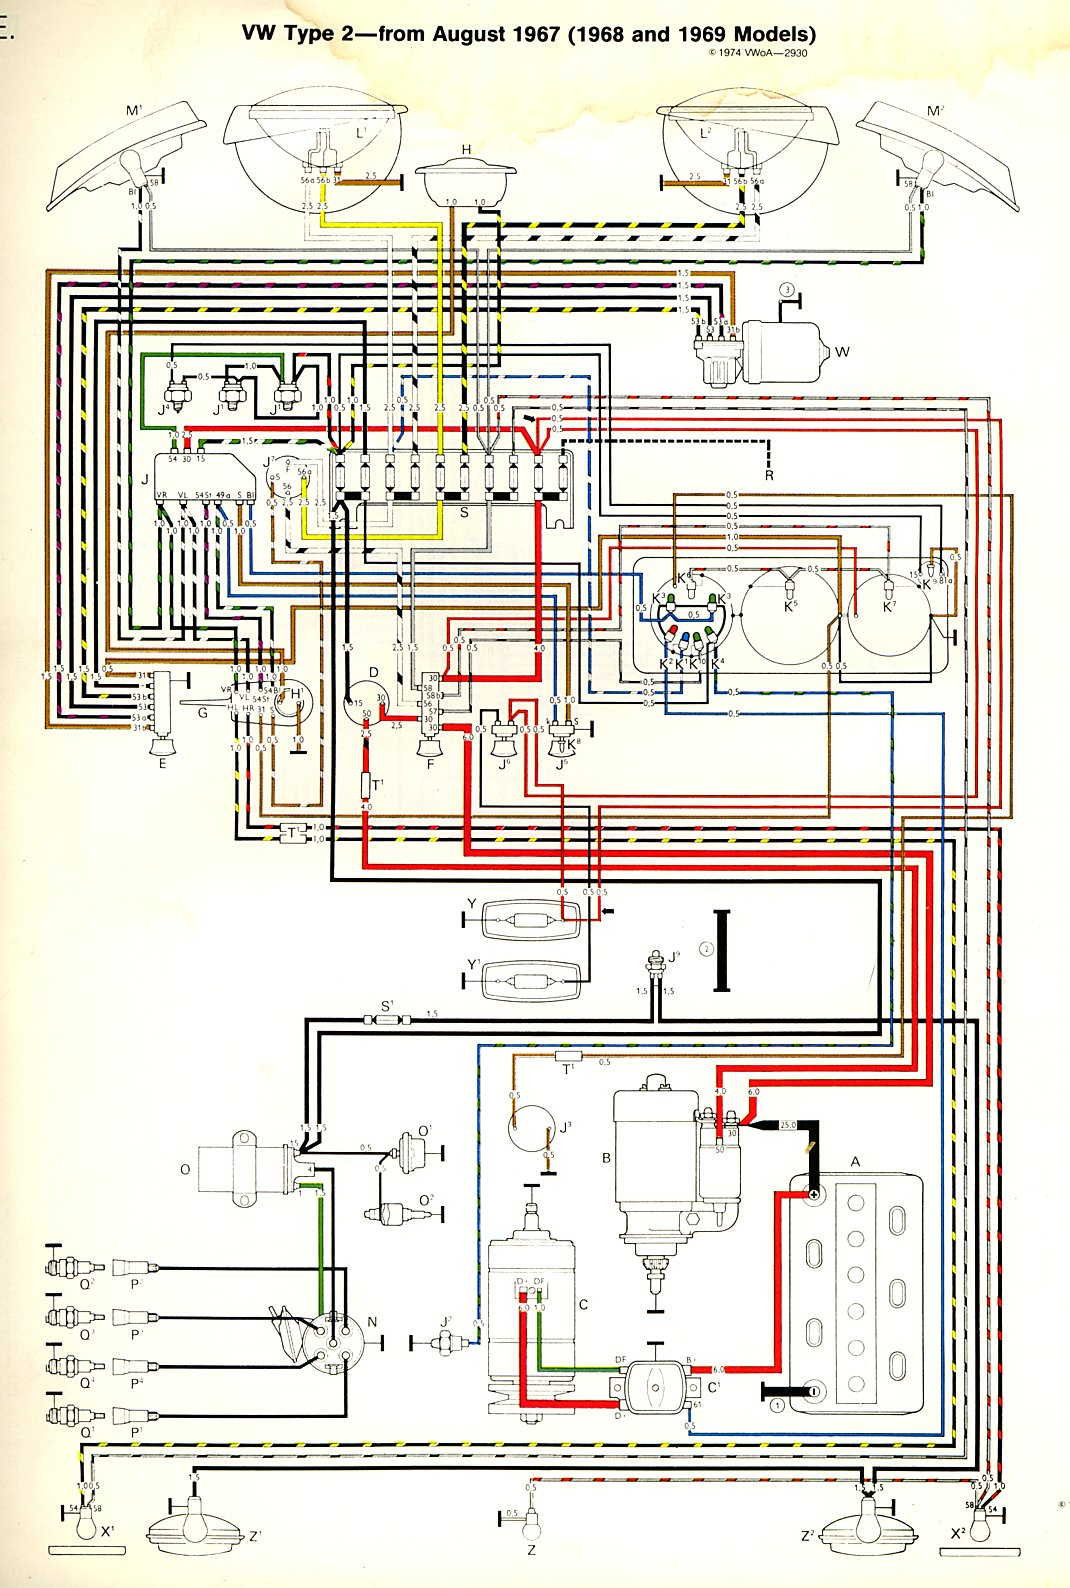 baybus_6869a bus wiring diagram vw wiring harness diagram \u2022 wiring diagrams j vw type 3 wiring harness at readyjetset.co